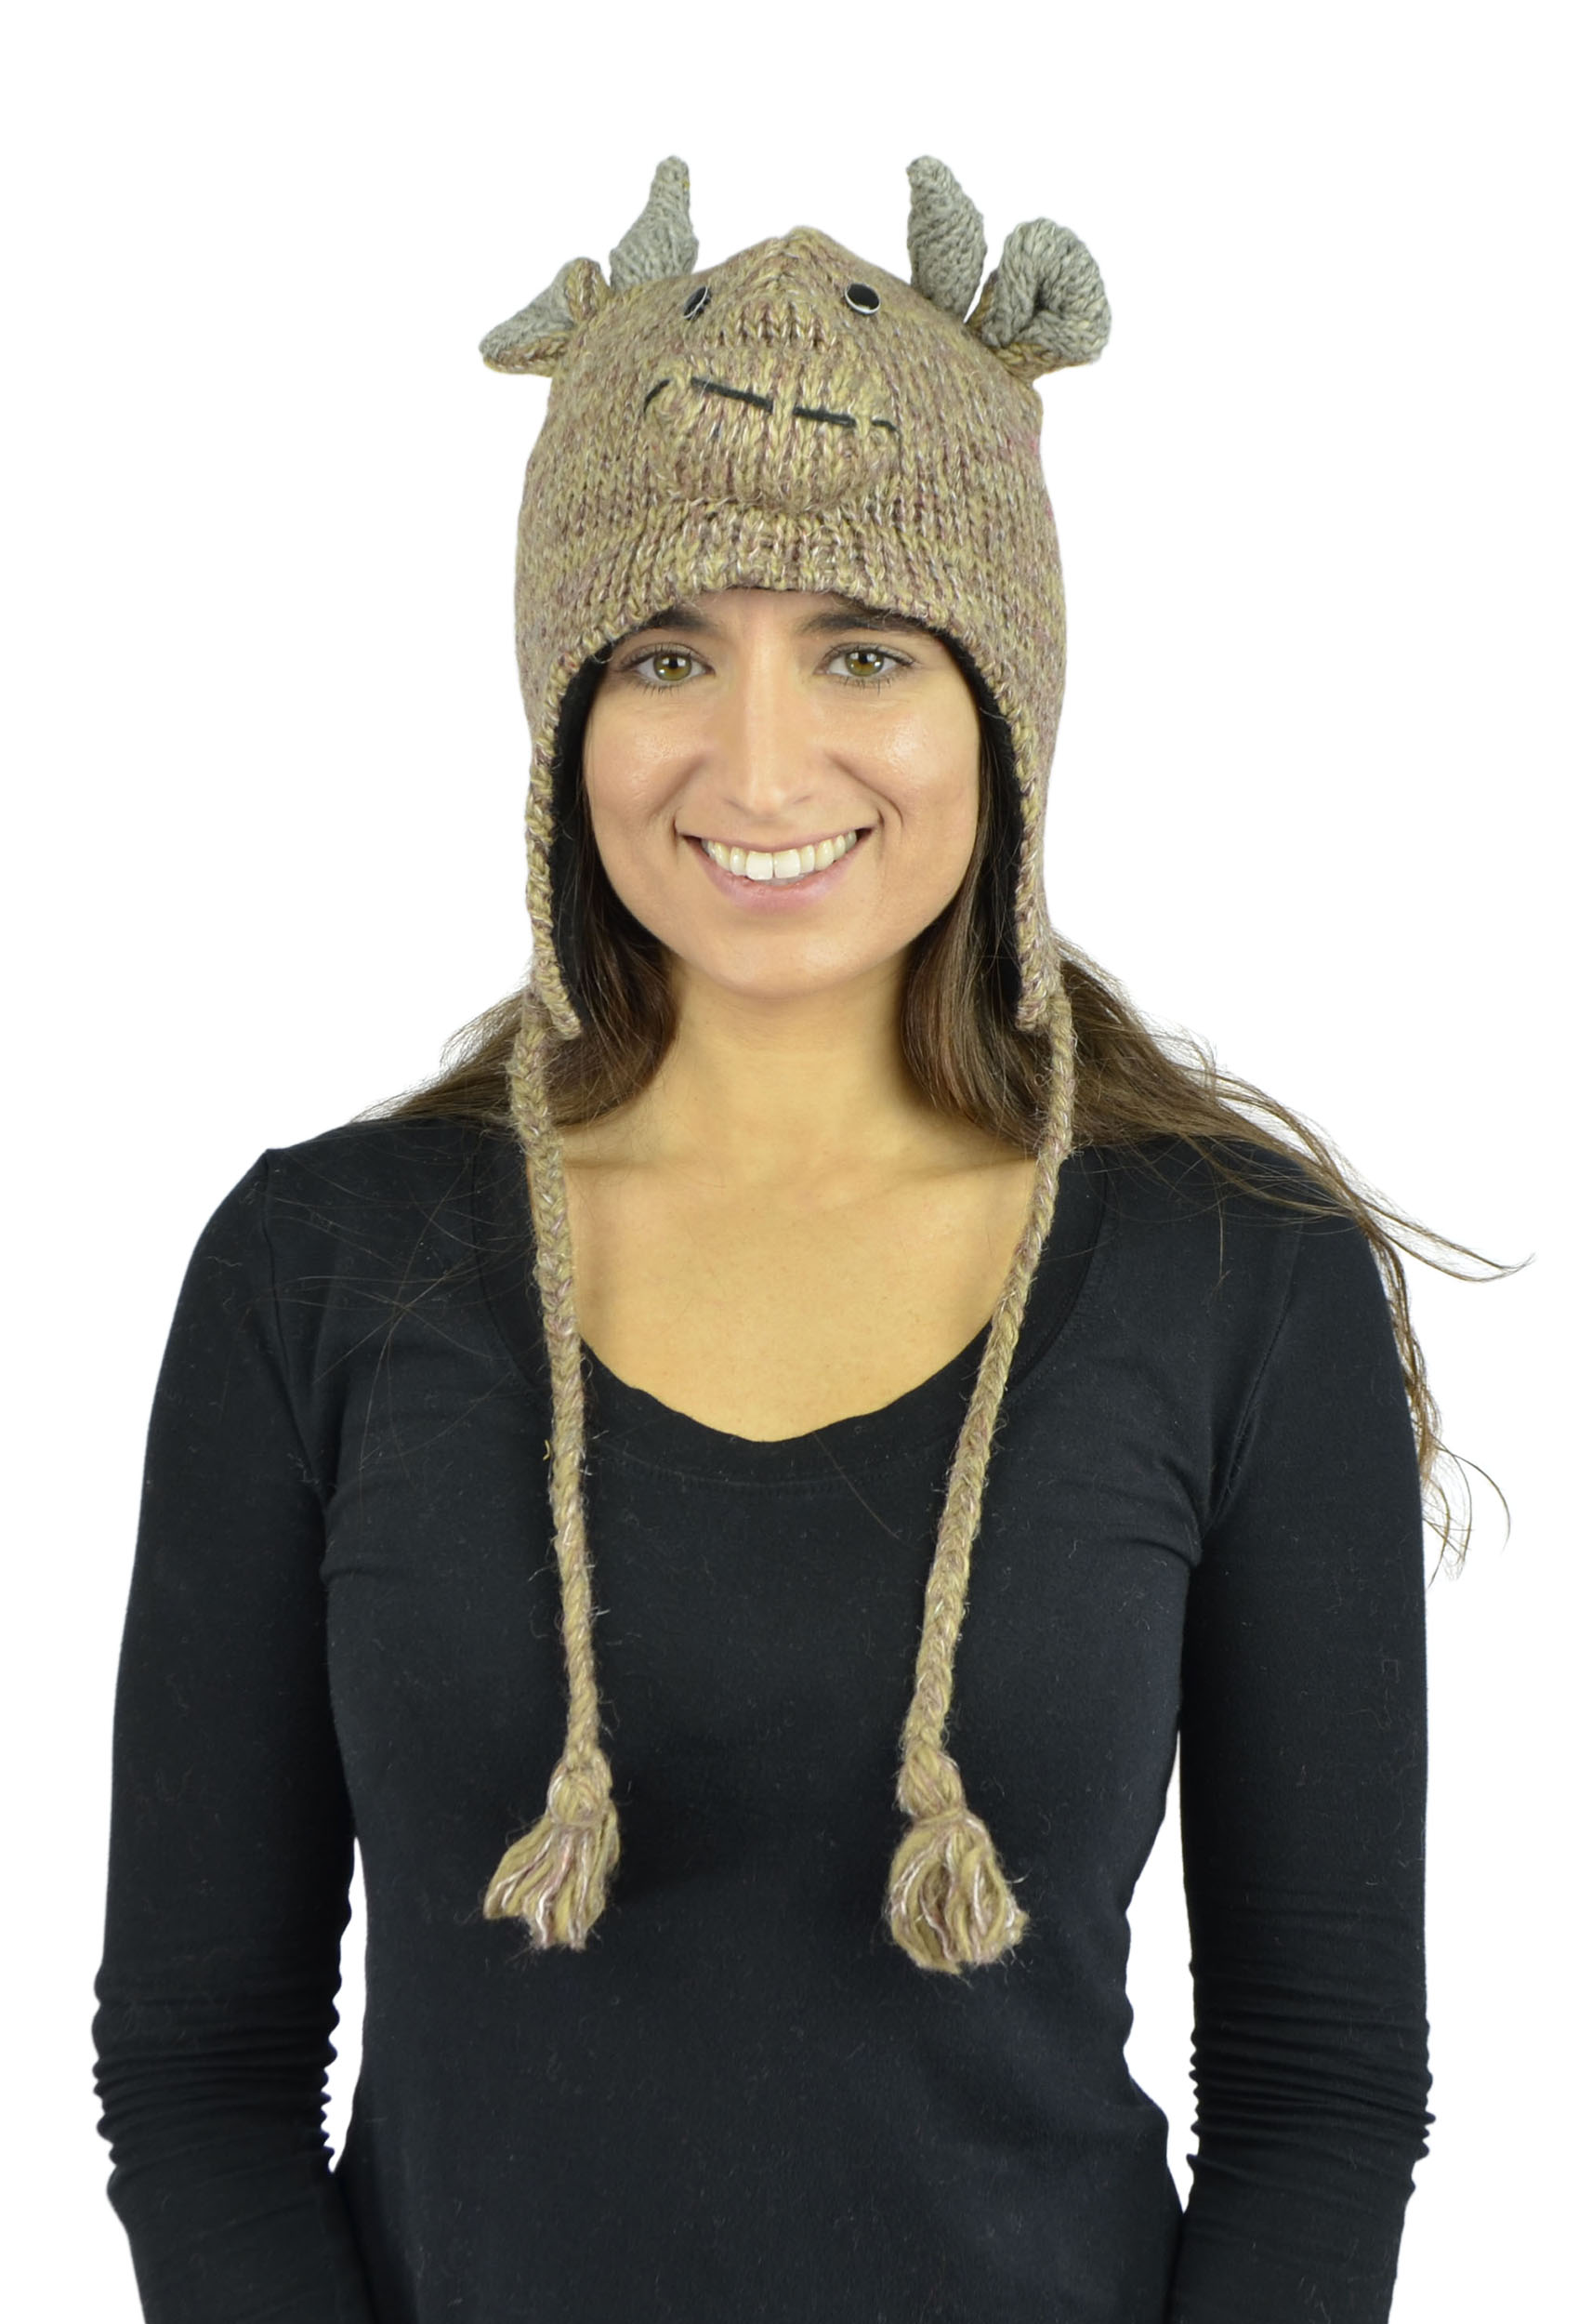 Belle Donne - Unisex Winter Knit Bull Animal Hats With Pom Pom - LightBrown